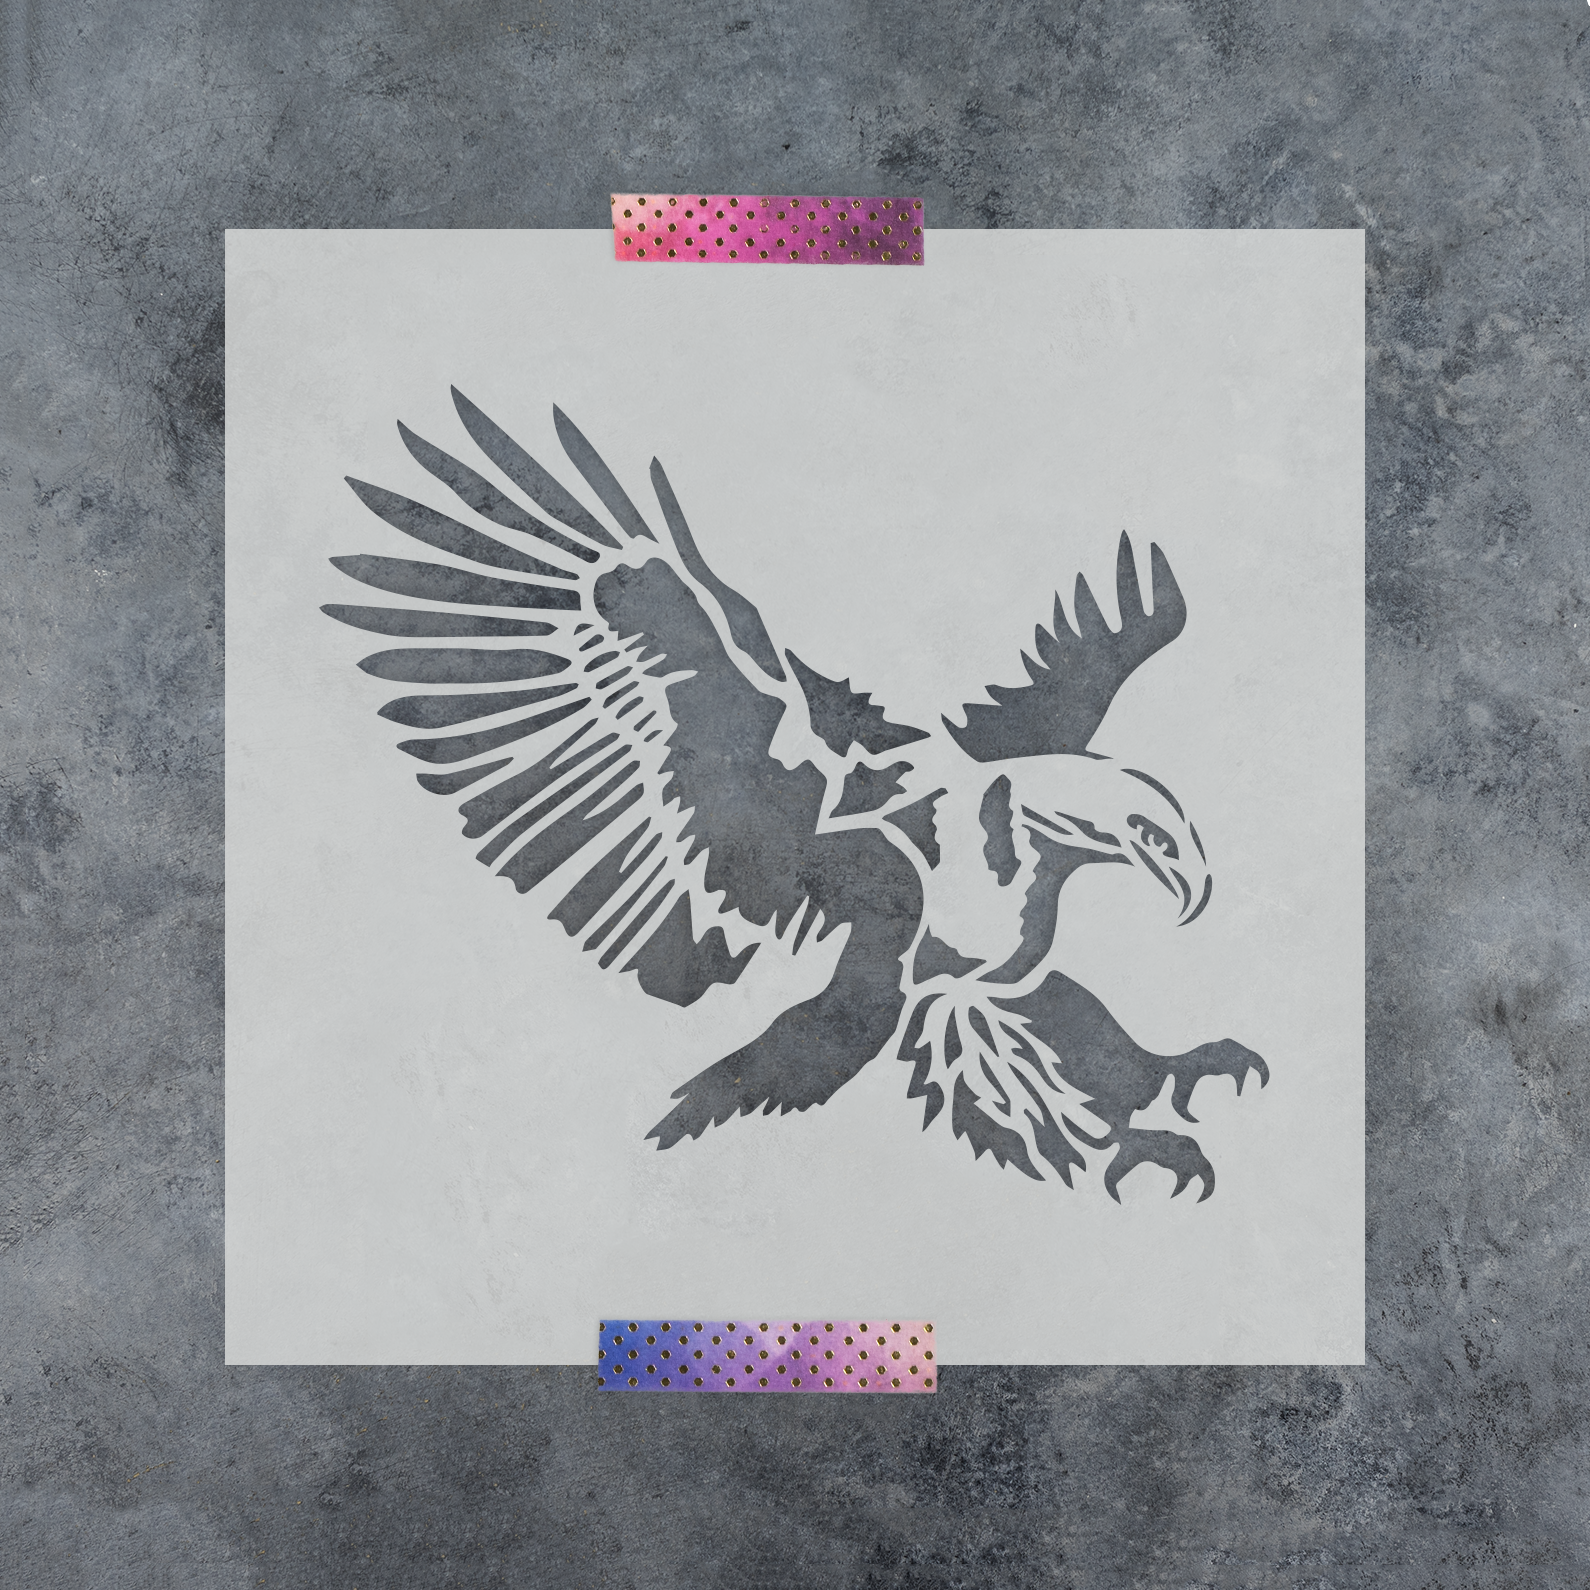 Eagle Stencil - Reusable Stencils of an Eagle Available in Small & Large Sizes